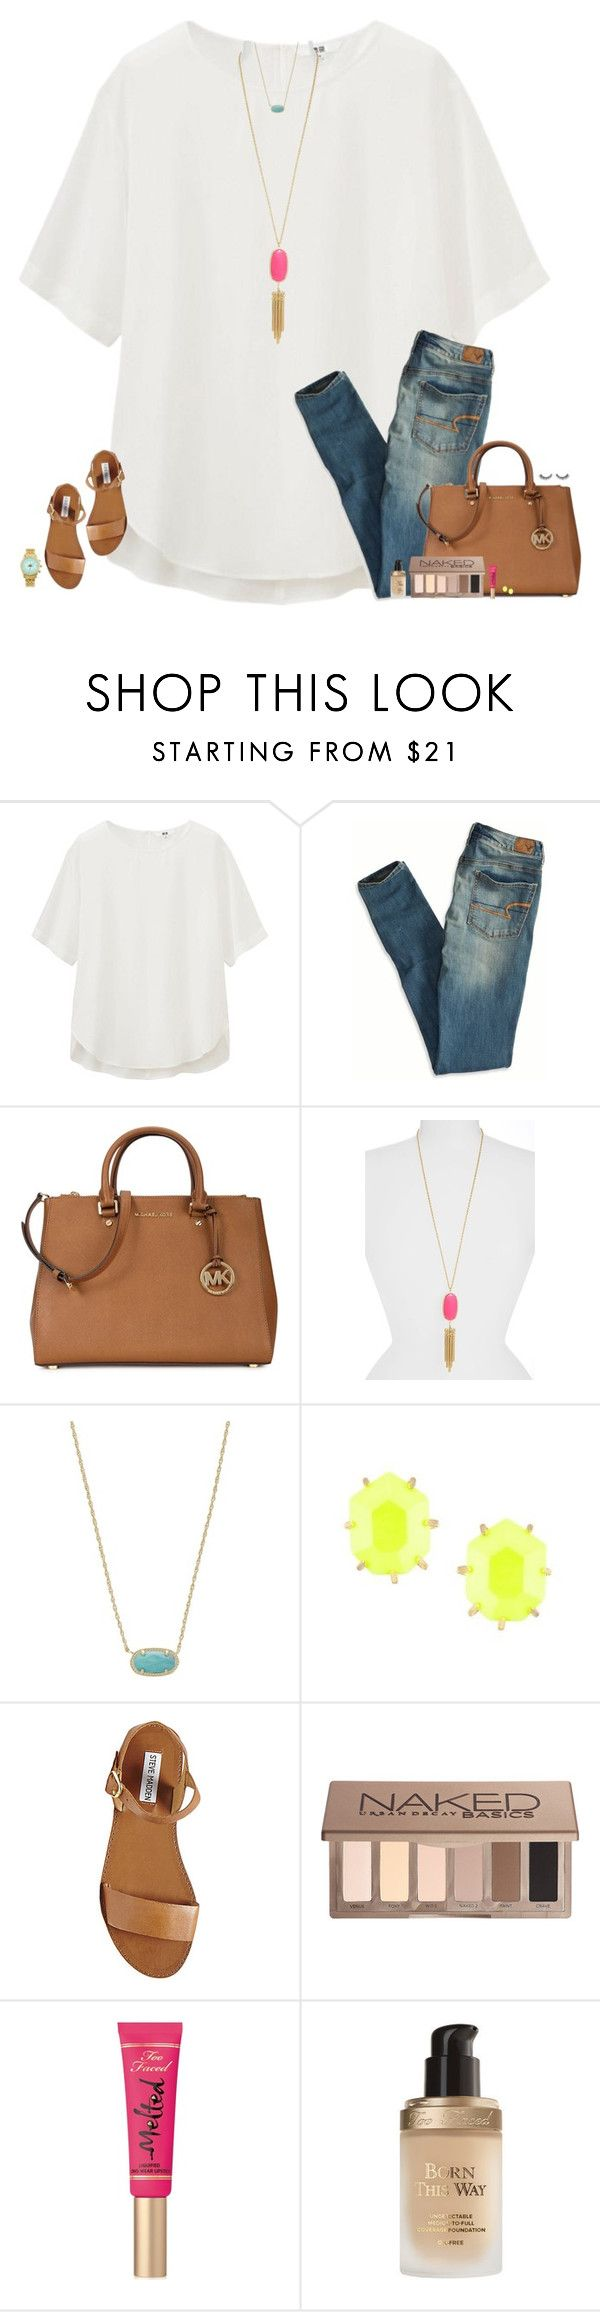 """""""Spring Days☀️"""" by maggie-prep ❤ liked on Polyvore featuring Uniqlo, American Eagle Outfitters, Michael Kors, Kendra Scott, Steve Madden, Urban Decay and Too Faced Cosmetics"""